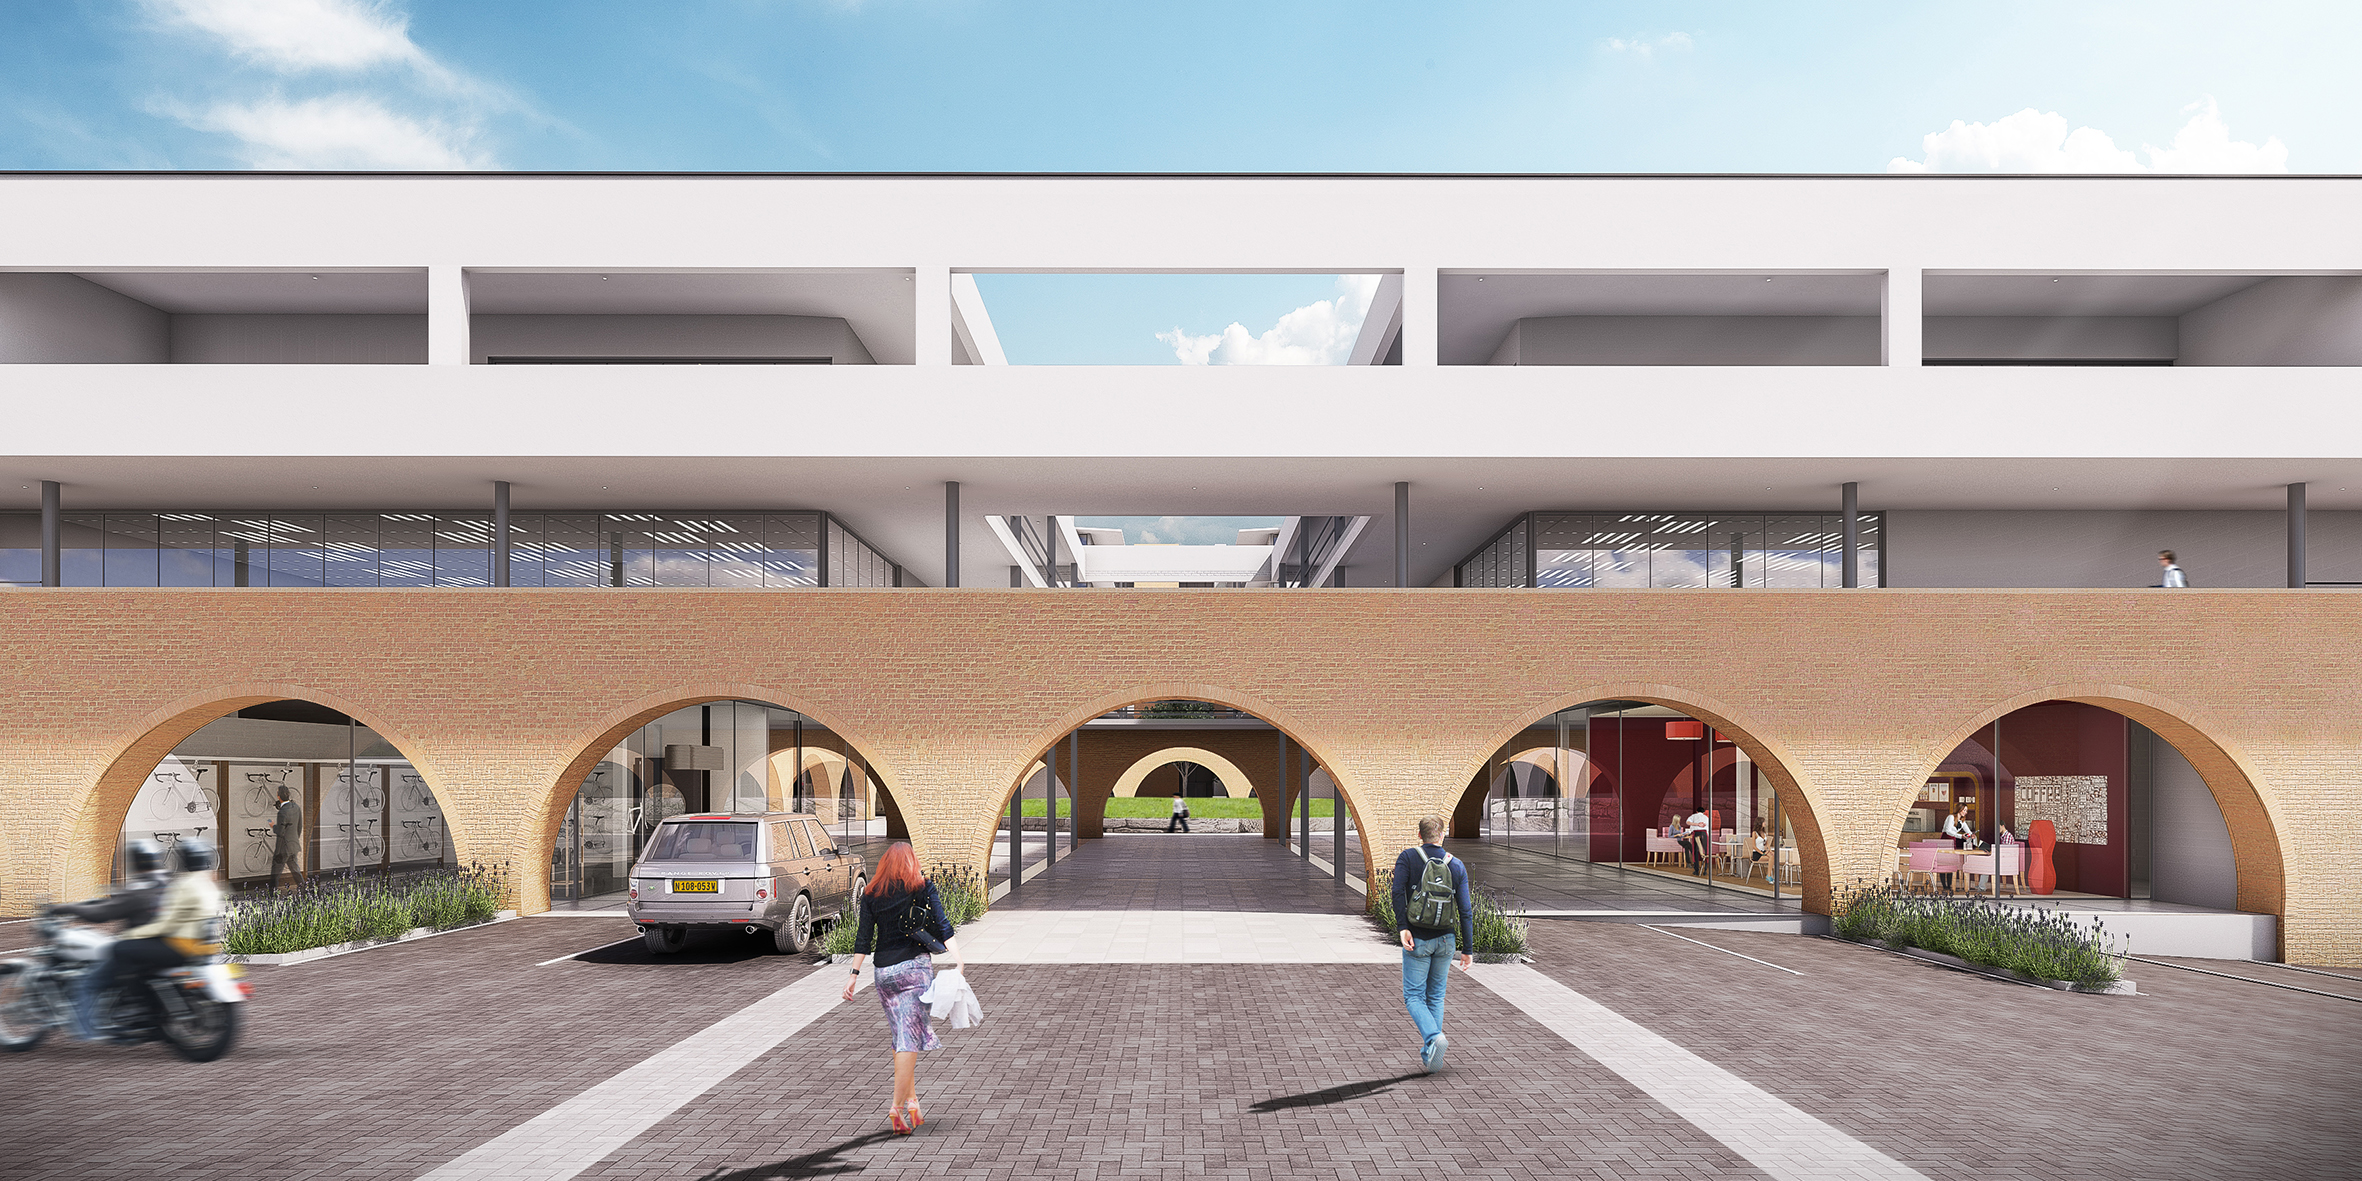 848 mixed use development, slideshow arches